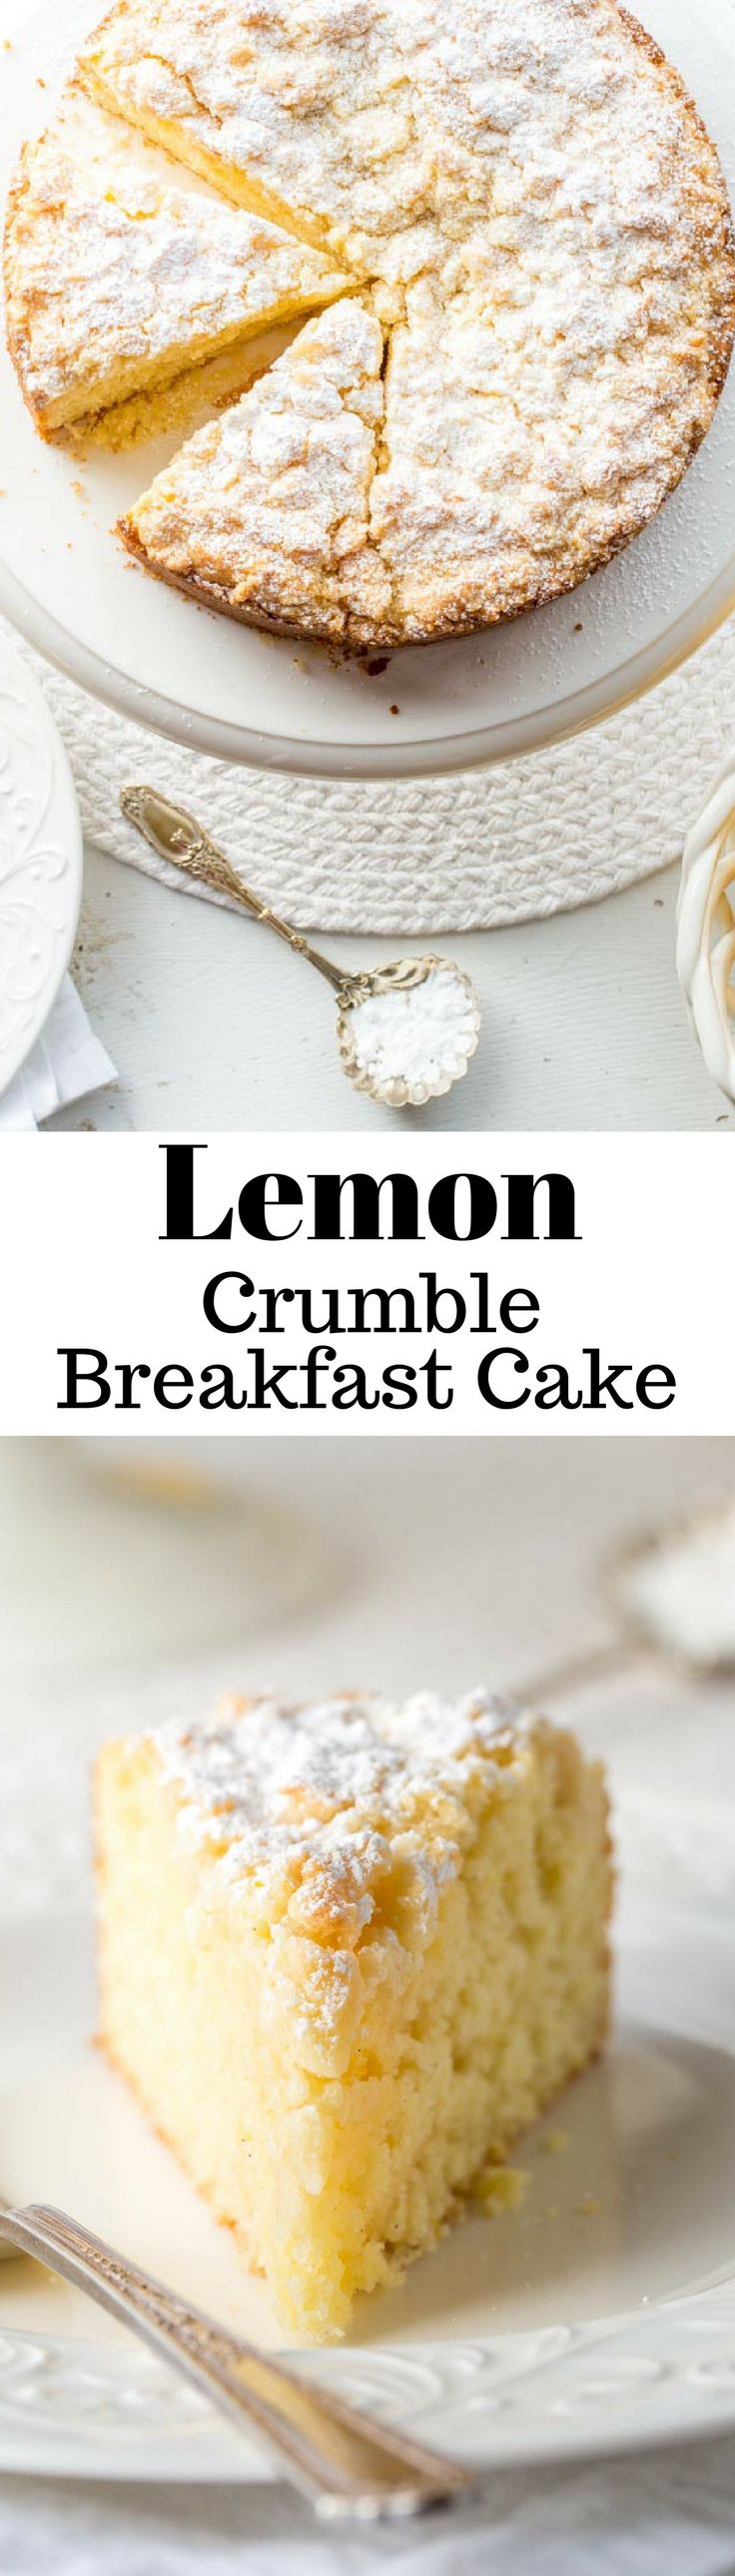 Lemon Crumble Breakfast Cake ~ from the first bite to the last, this cake is loaded with bright lemon flavor. This is a moist, tender cake topped with a sweet crumble top then dusted with powdered sugar. Whether you serve it for breakfast, brunch, afternoon tea or dessert, you'll be basking in enthusiastic, sunny compliments! www.savingdessert.com   breakfast   cake   lemon   crumble   brunch   coffee cake   dessert